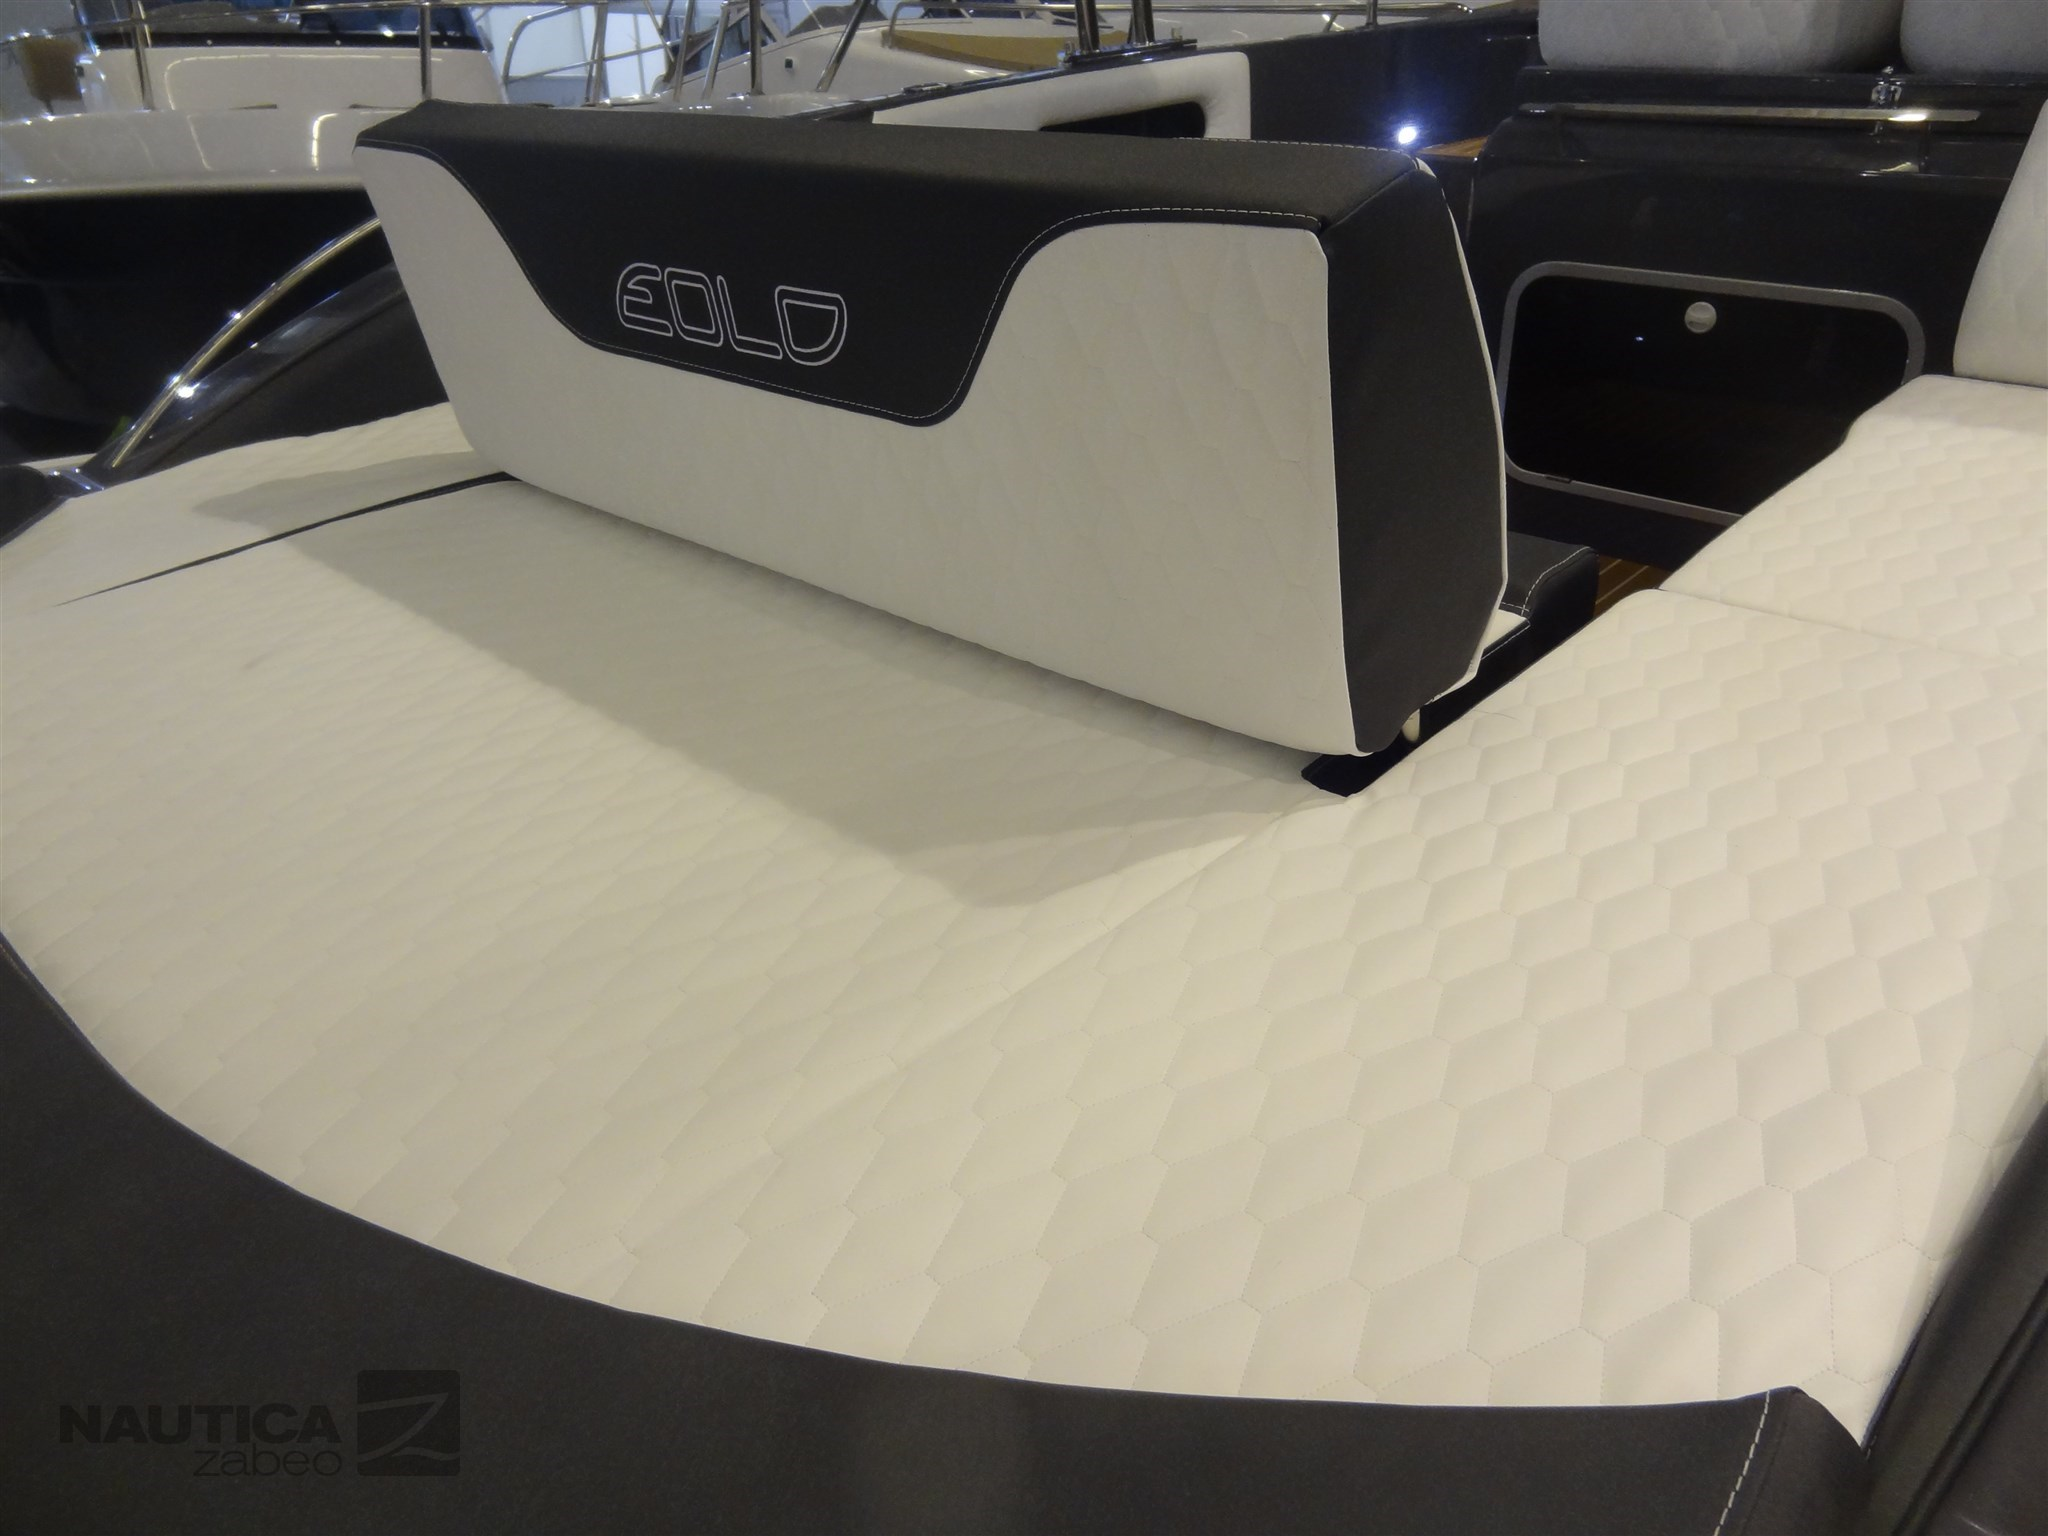 Eolo 730 Day Hbs (New Package)